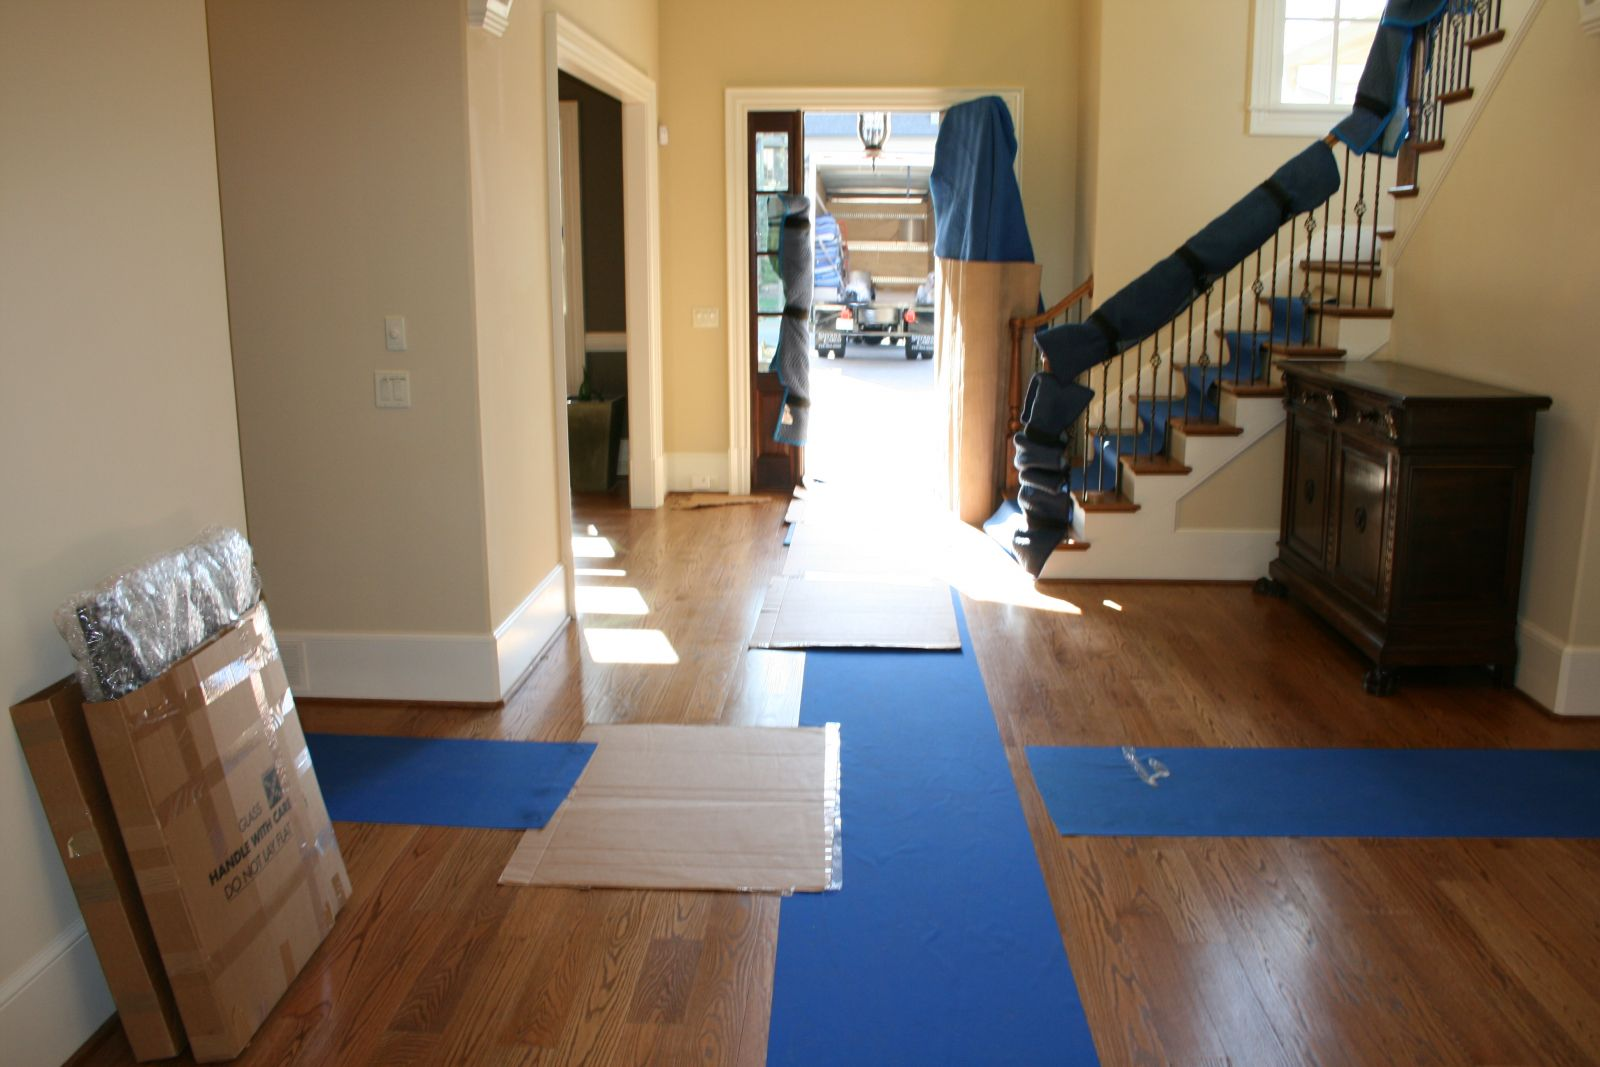 Movers Quote Long Distance Moving Company In Daytona Beach Fl